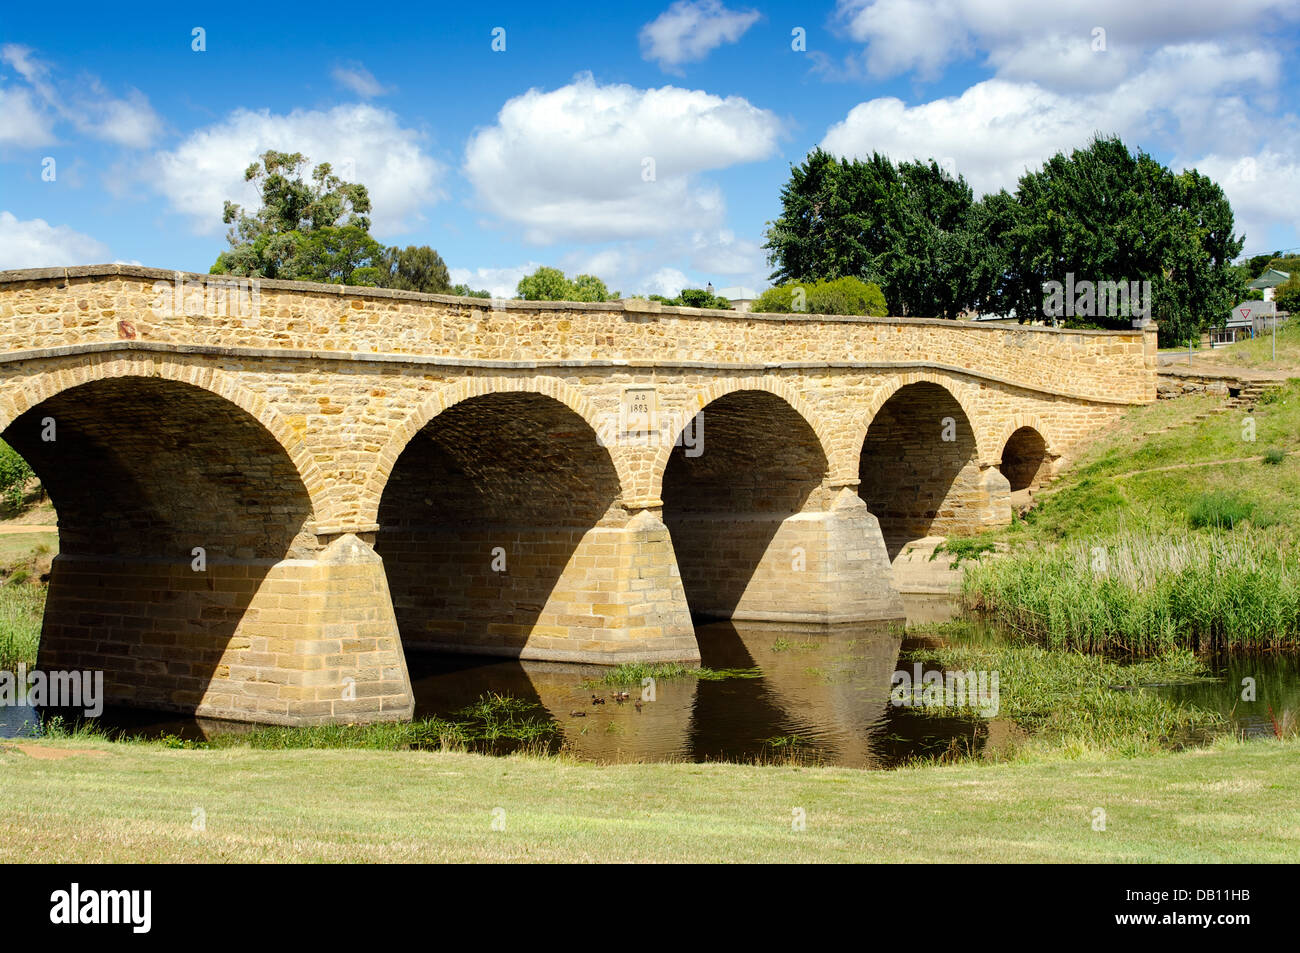 Richmond bridge, Tasmania is the oldest bridge in Australia, built by convicts in 1823. - Stock Image